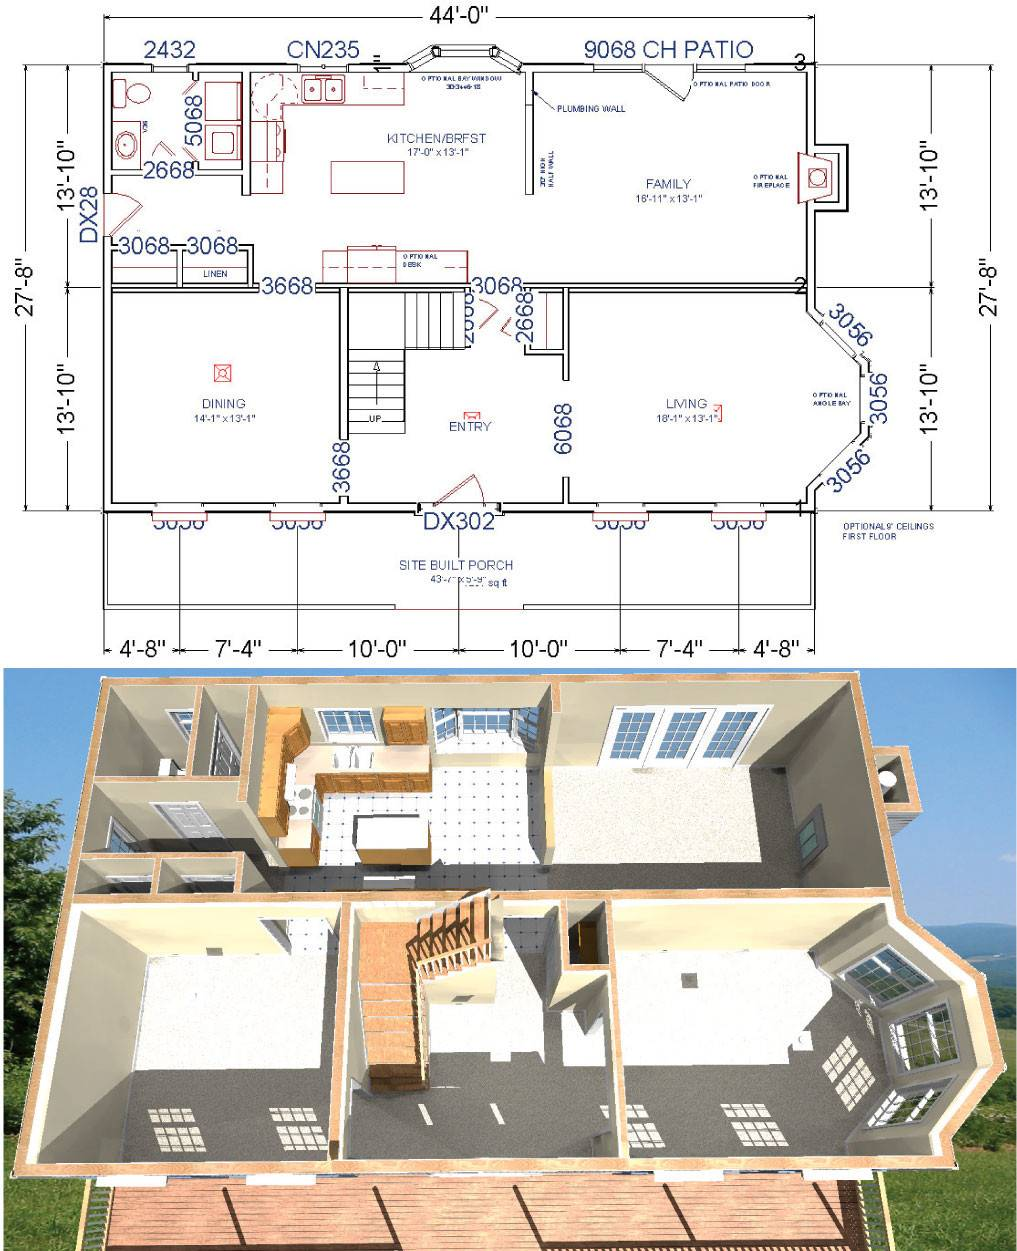 Home Additions Plan Drawings: Floor Plans Additions Modular Home